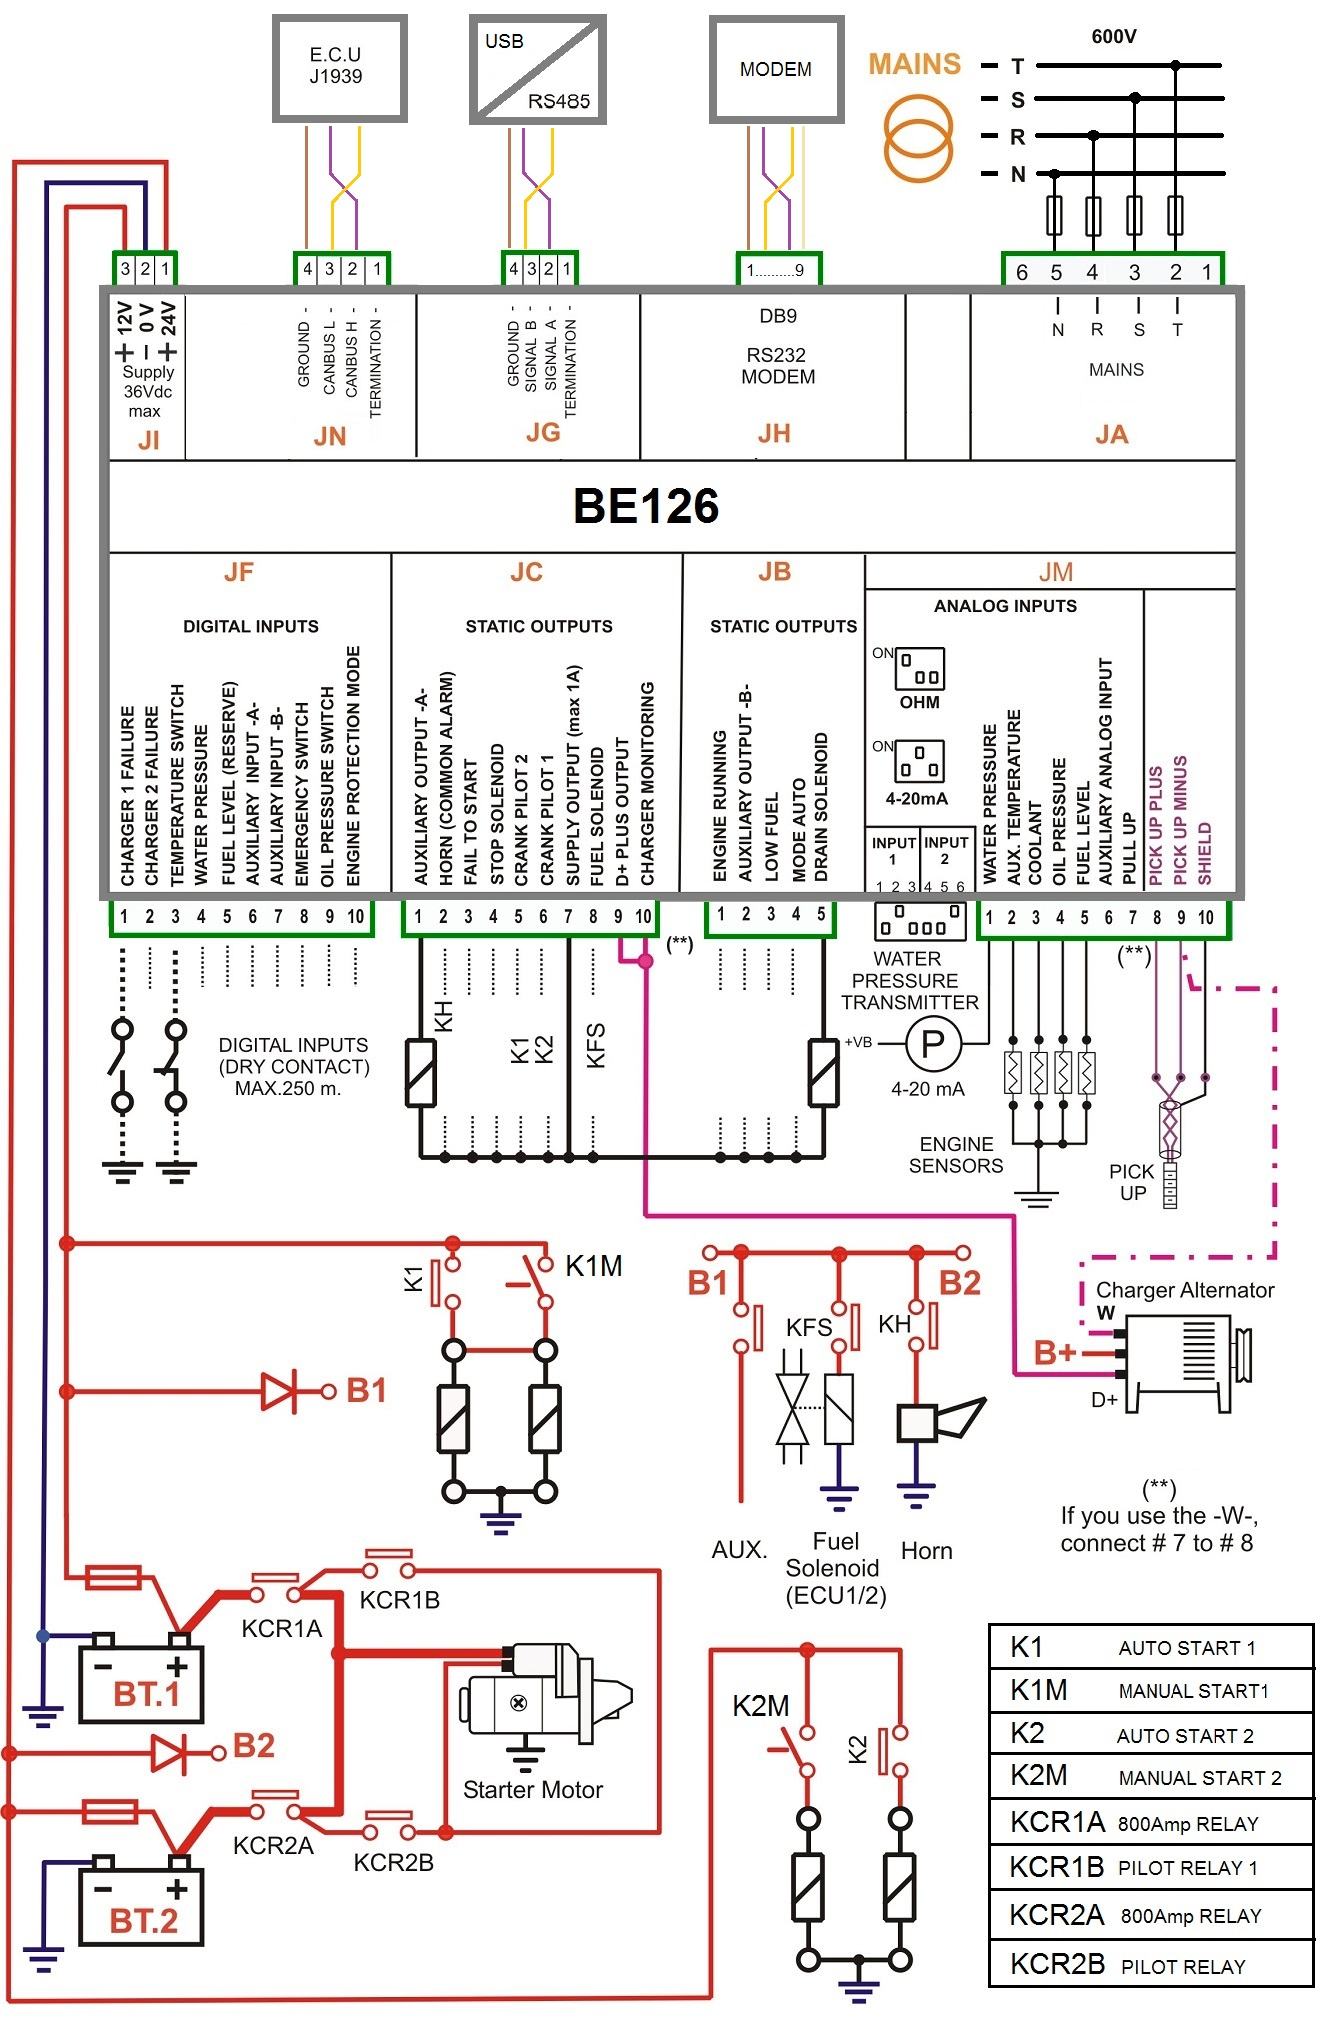 NFPA20 fire pump controller wiring diagram fire pump controller wiring diagram genset controller pump motor wiring diagram at n-0.co